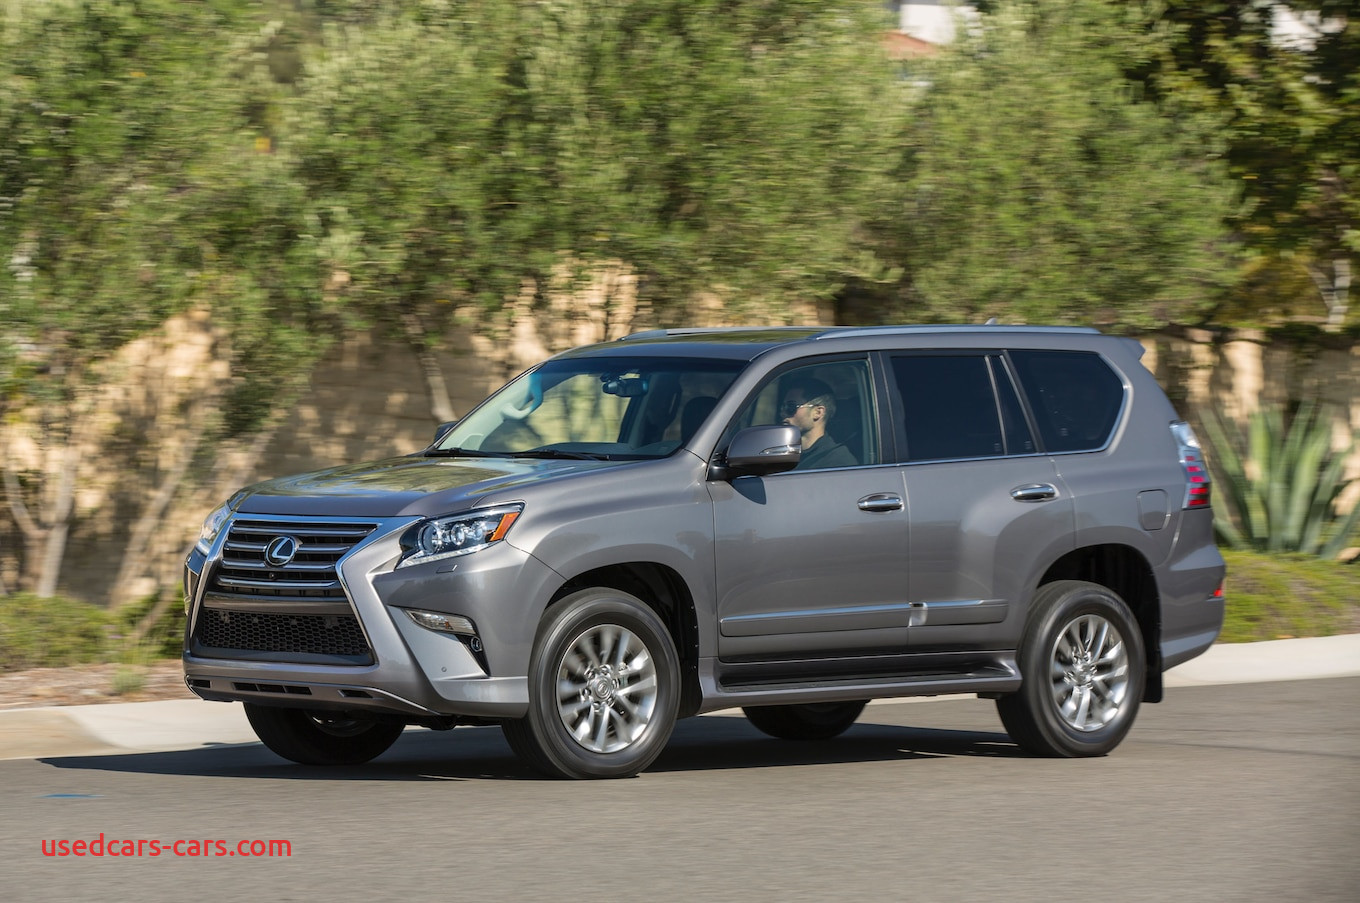 2014-lexus-gx460 Awesome 2015 Lexus Gx460 Reviews and Rating Motor Trend